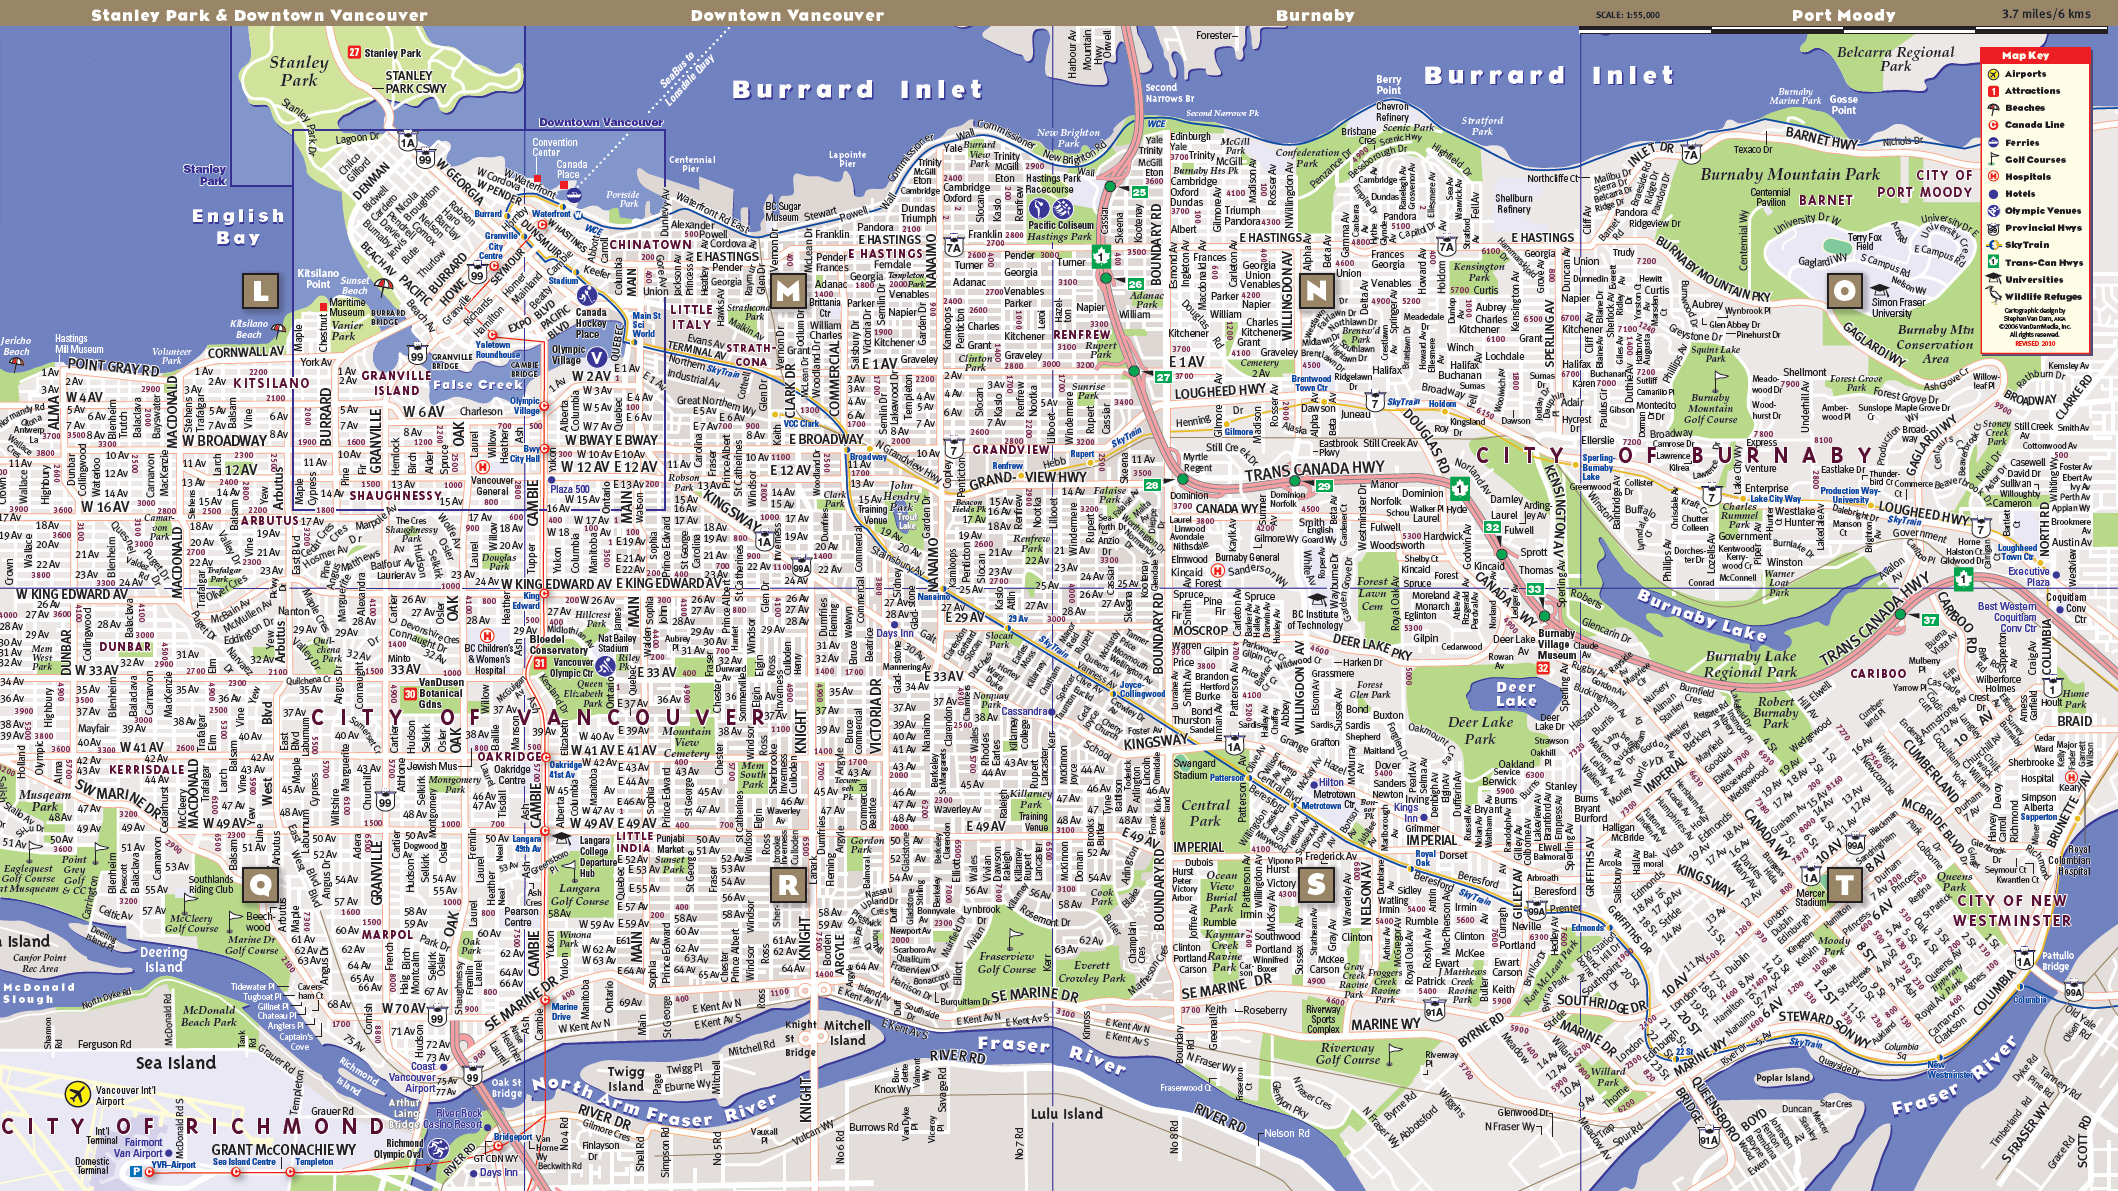 VanDam Maps - Image Gallery VANCOUVER MAP